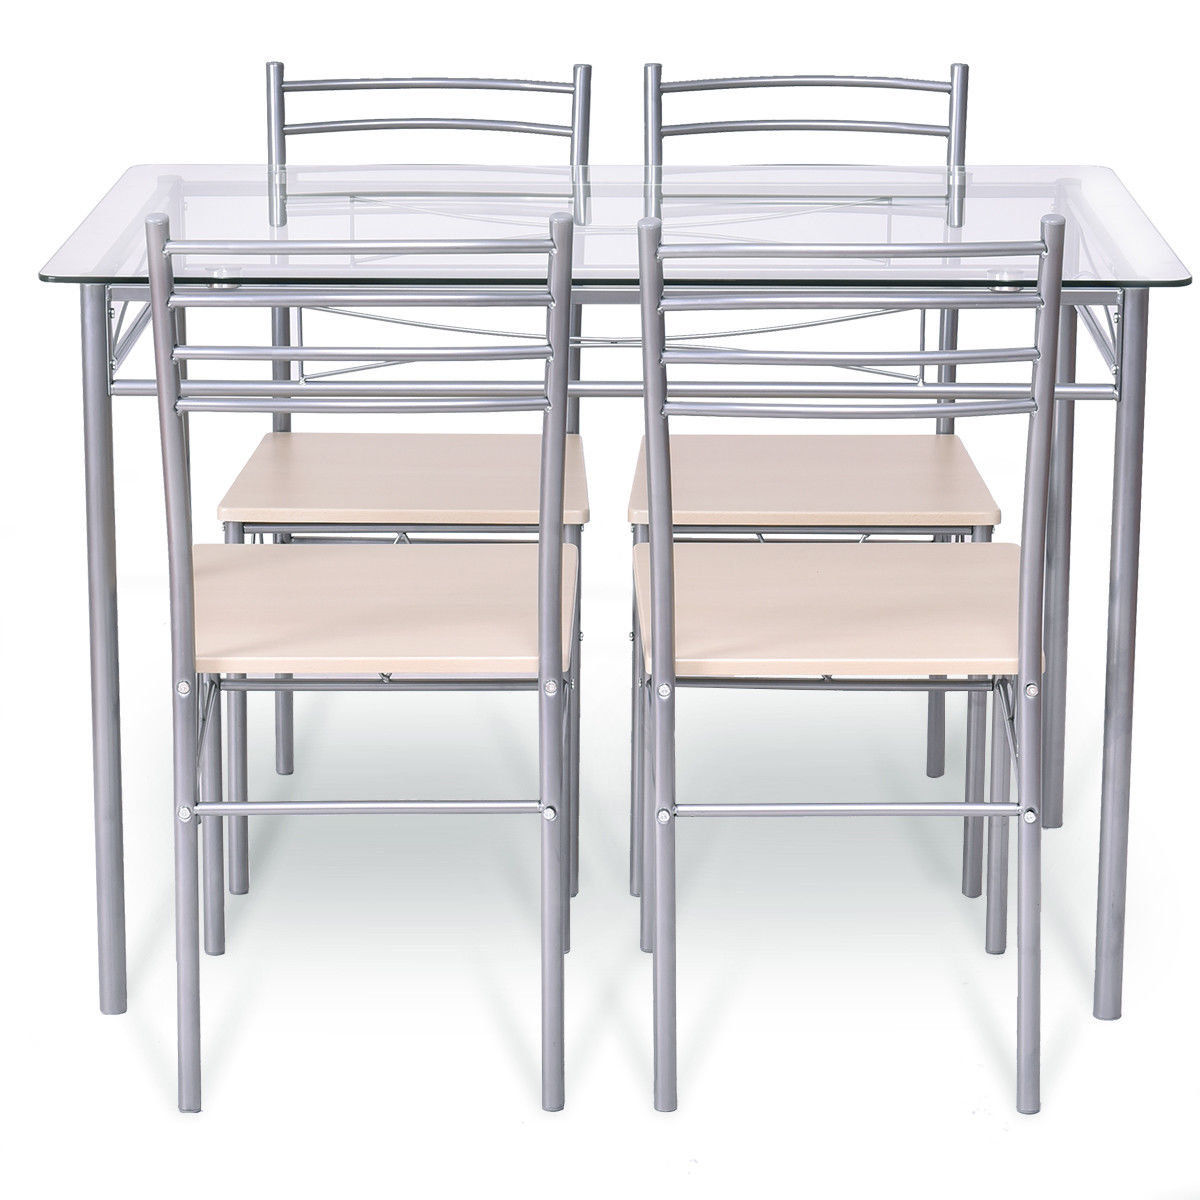 Most Popular Stouferberg 5 Piece Dining Set With Regard To Stouferberg 5 Piece Dining Sets (View 4 of 20)